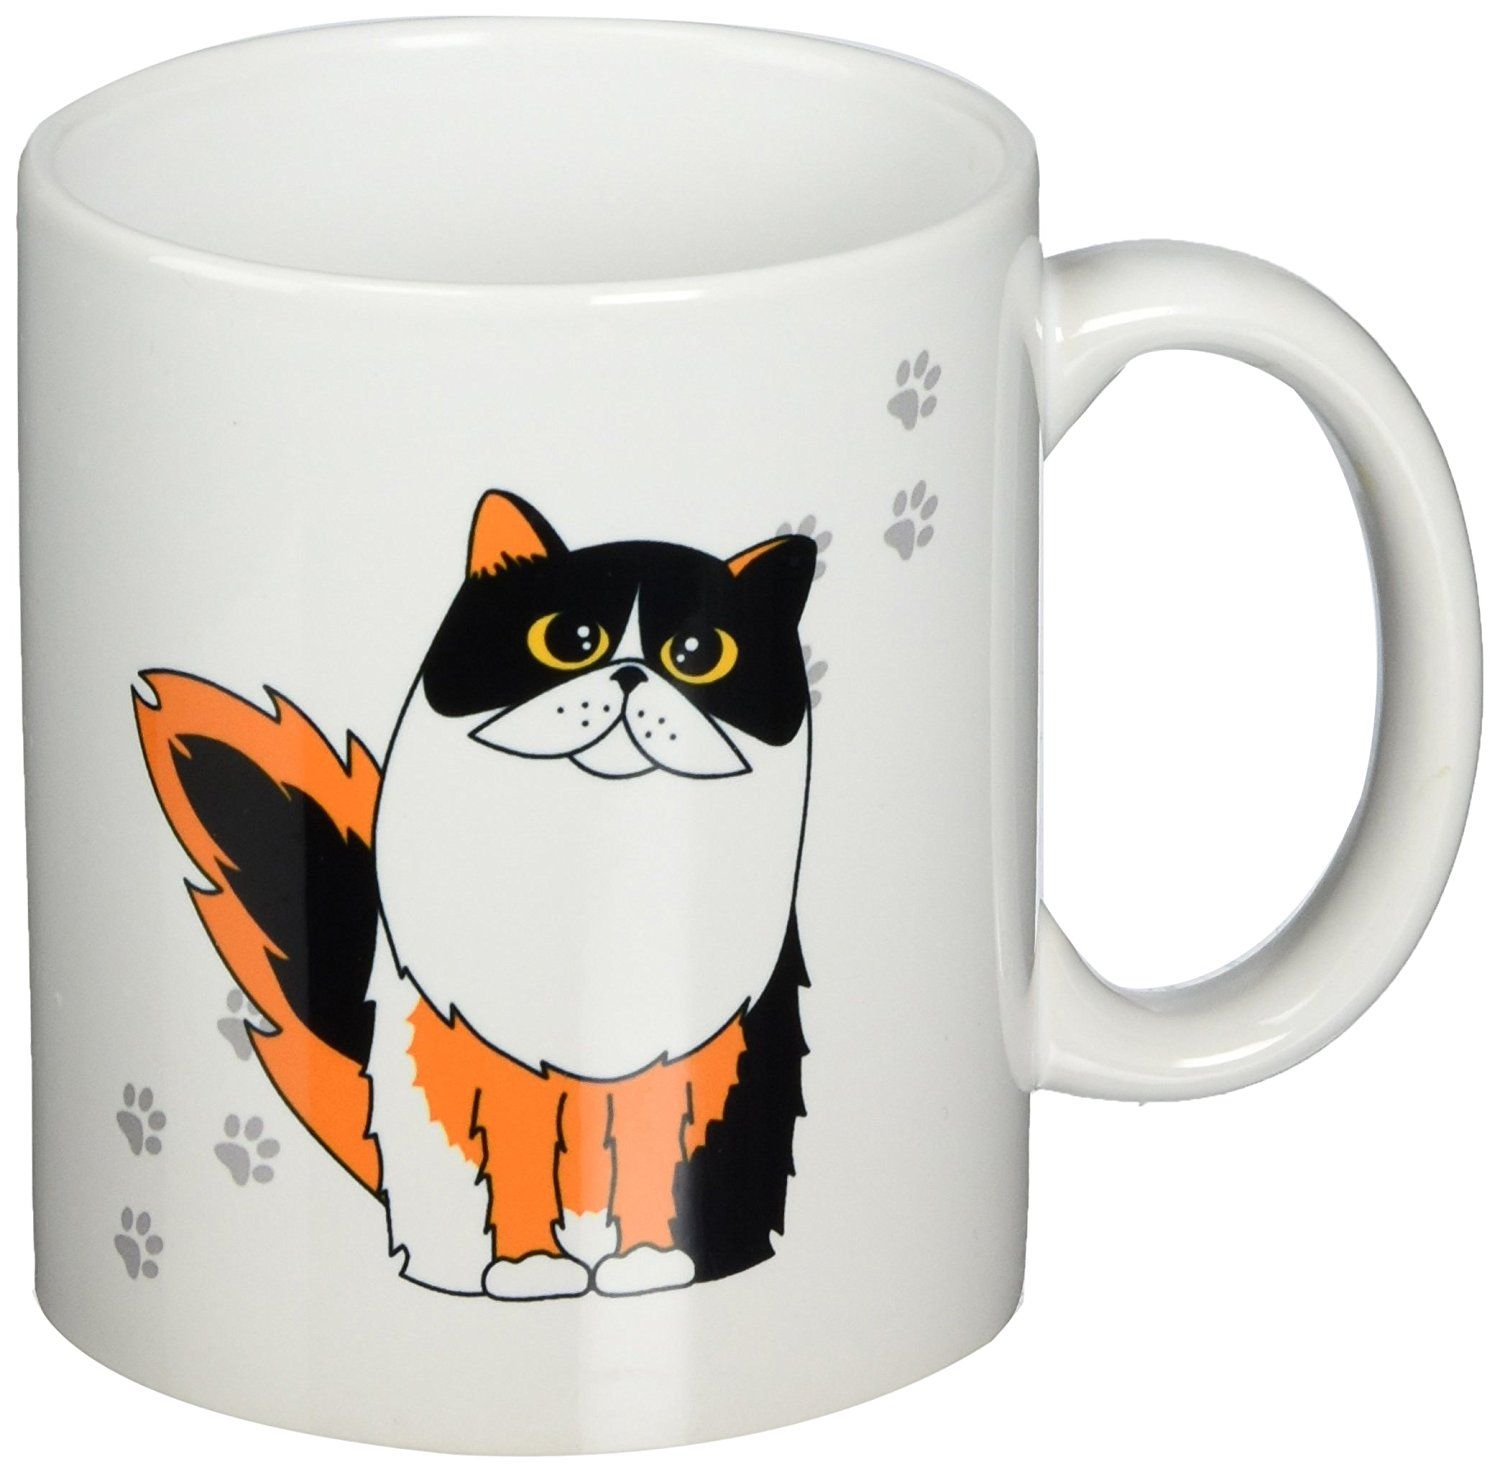 Pin on Cat mug